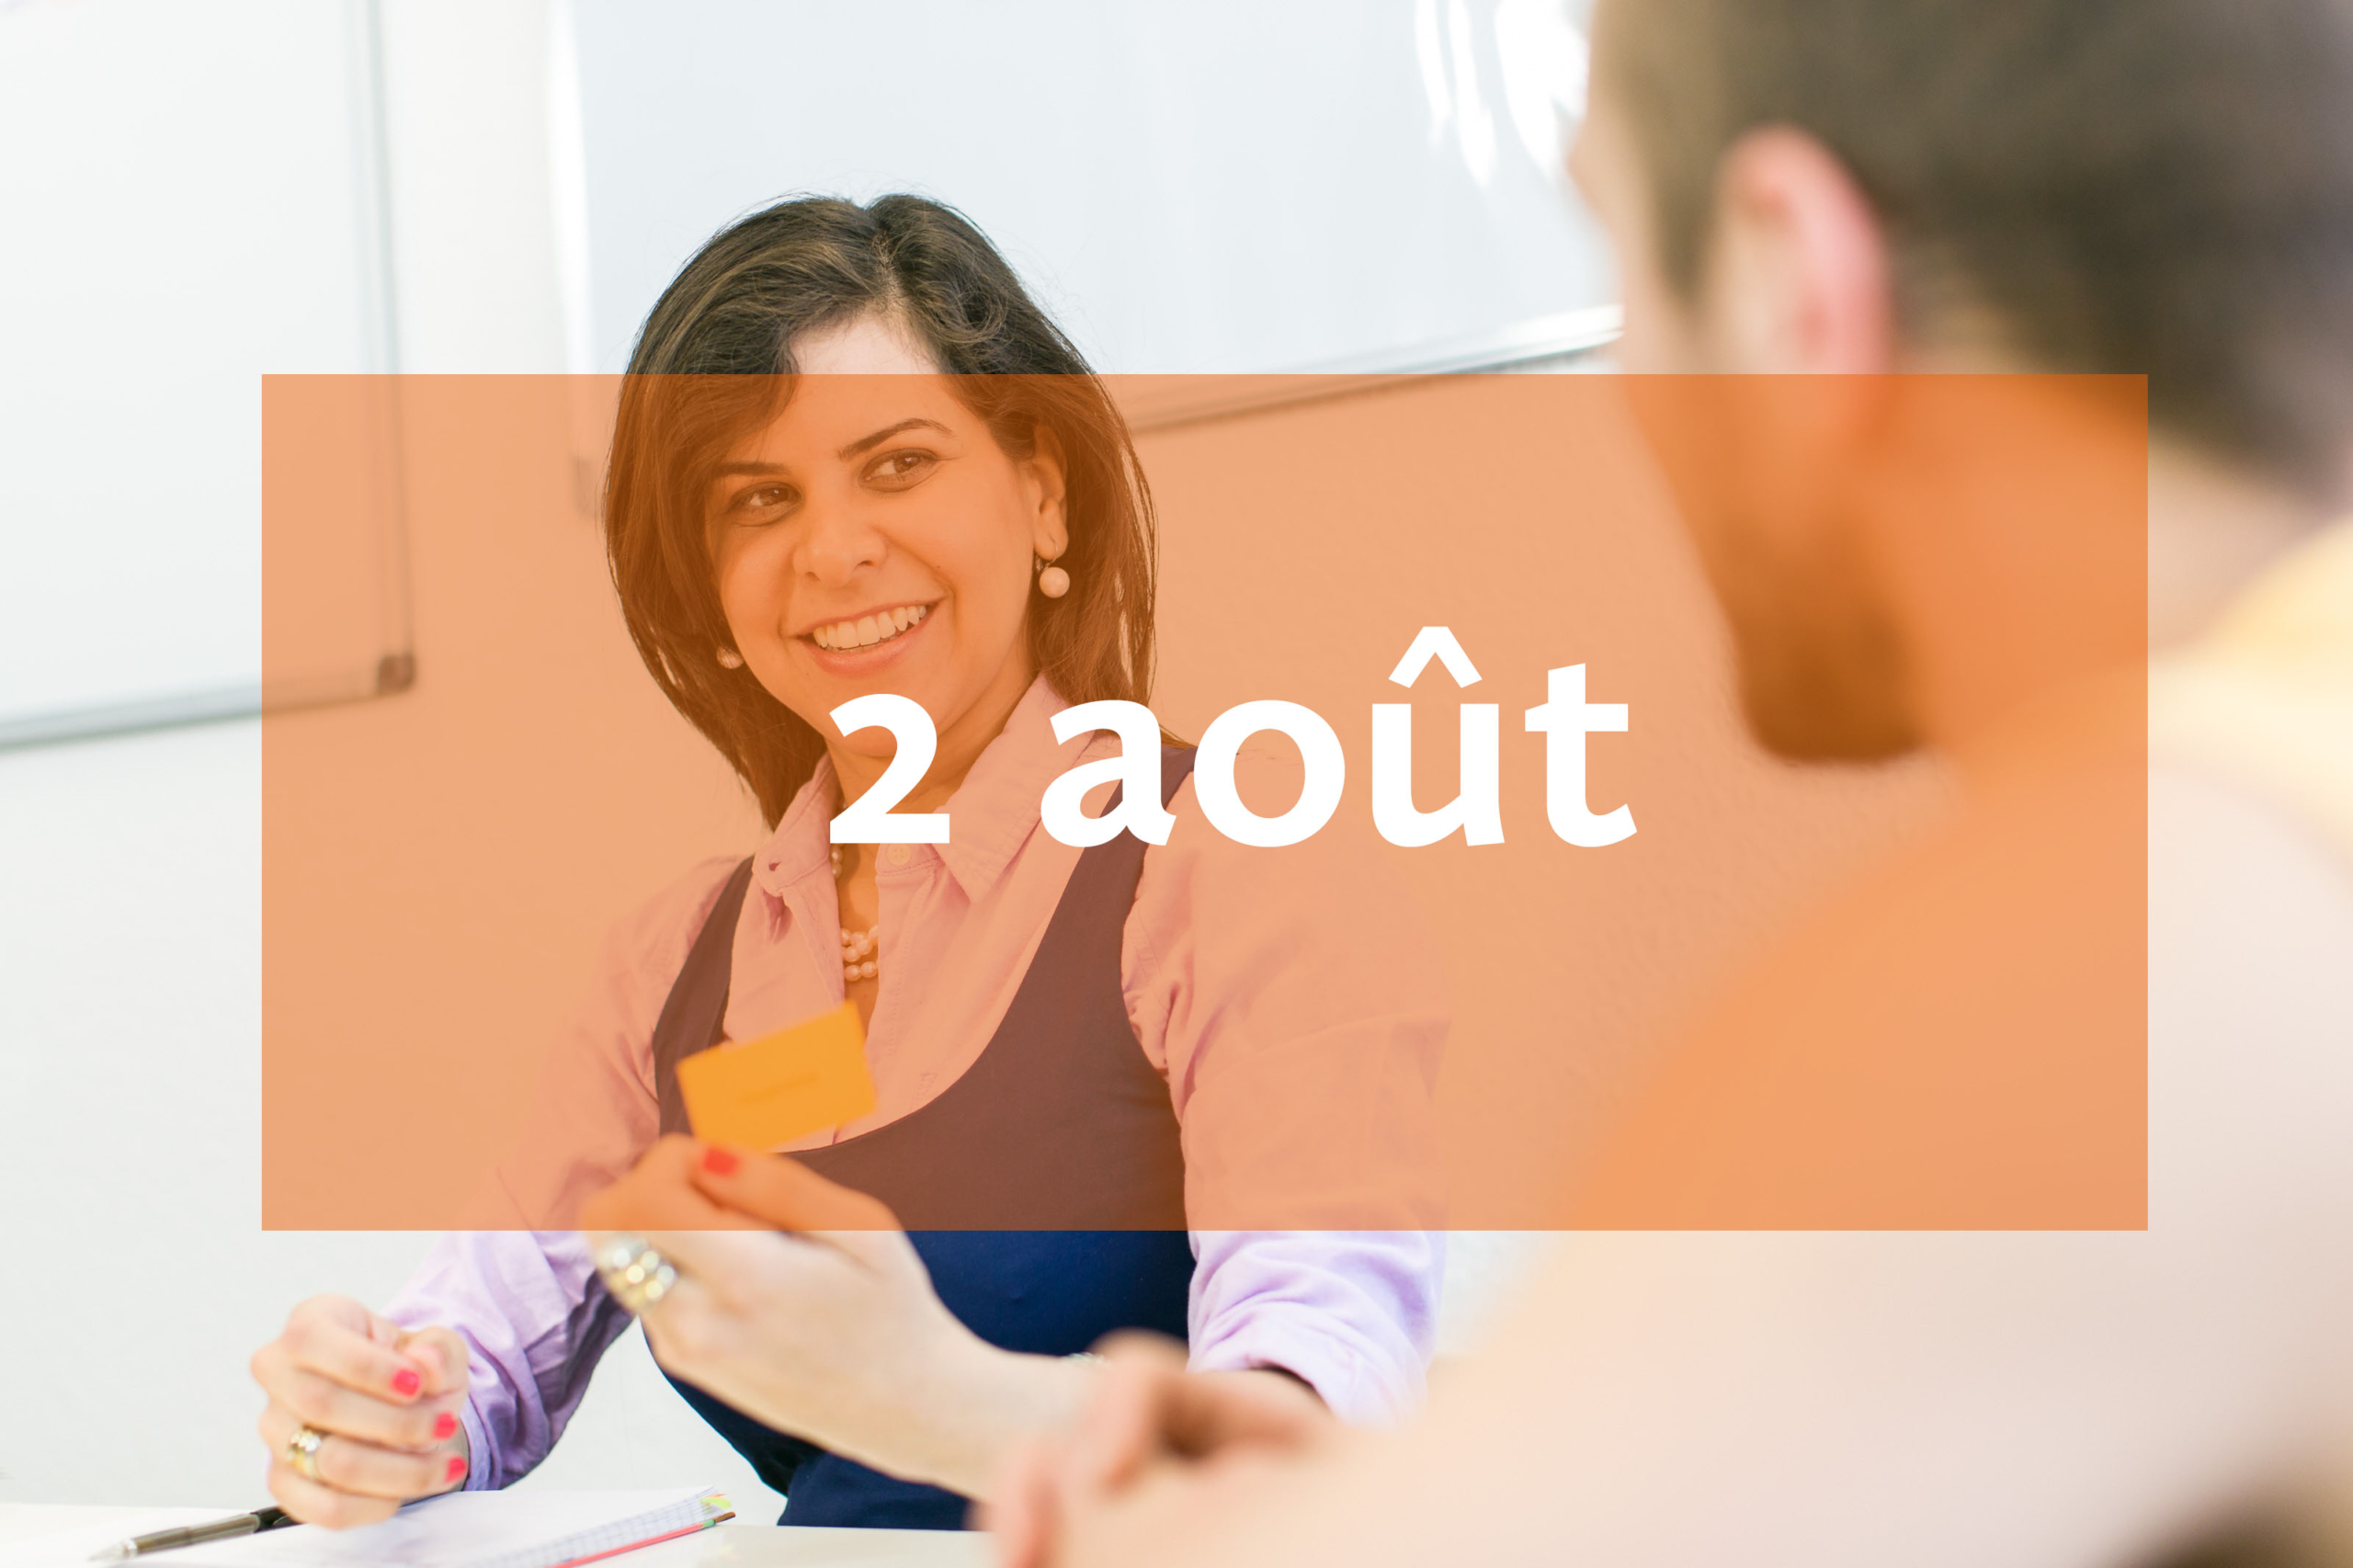 cours dallemand apprendre lallemand berlin